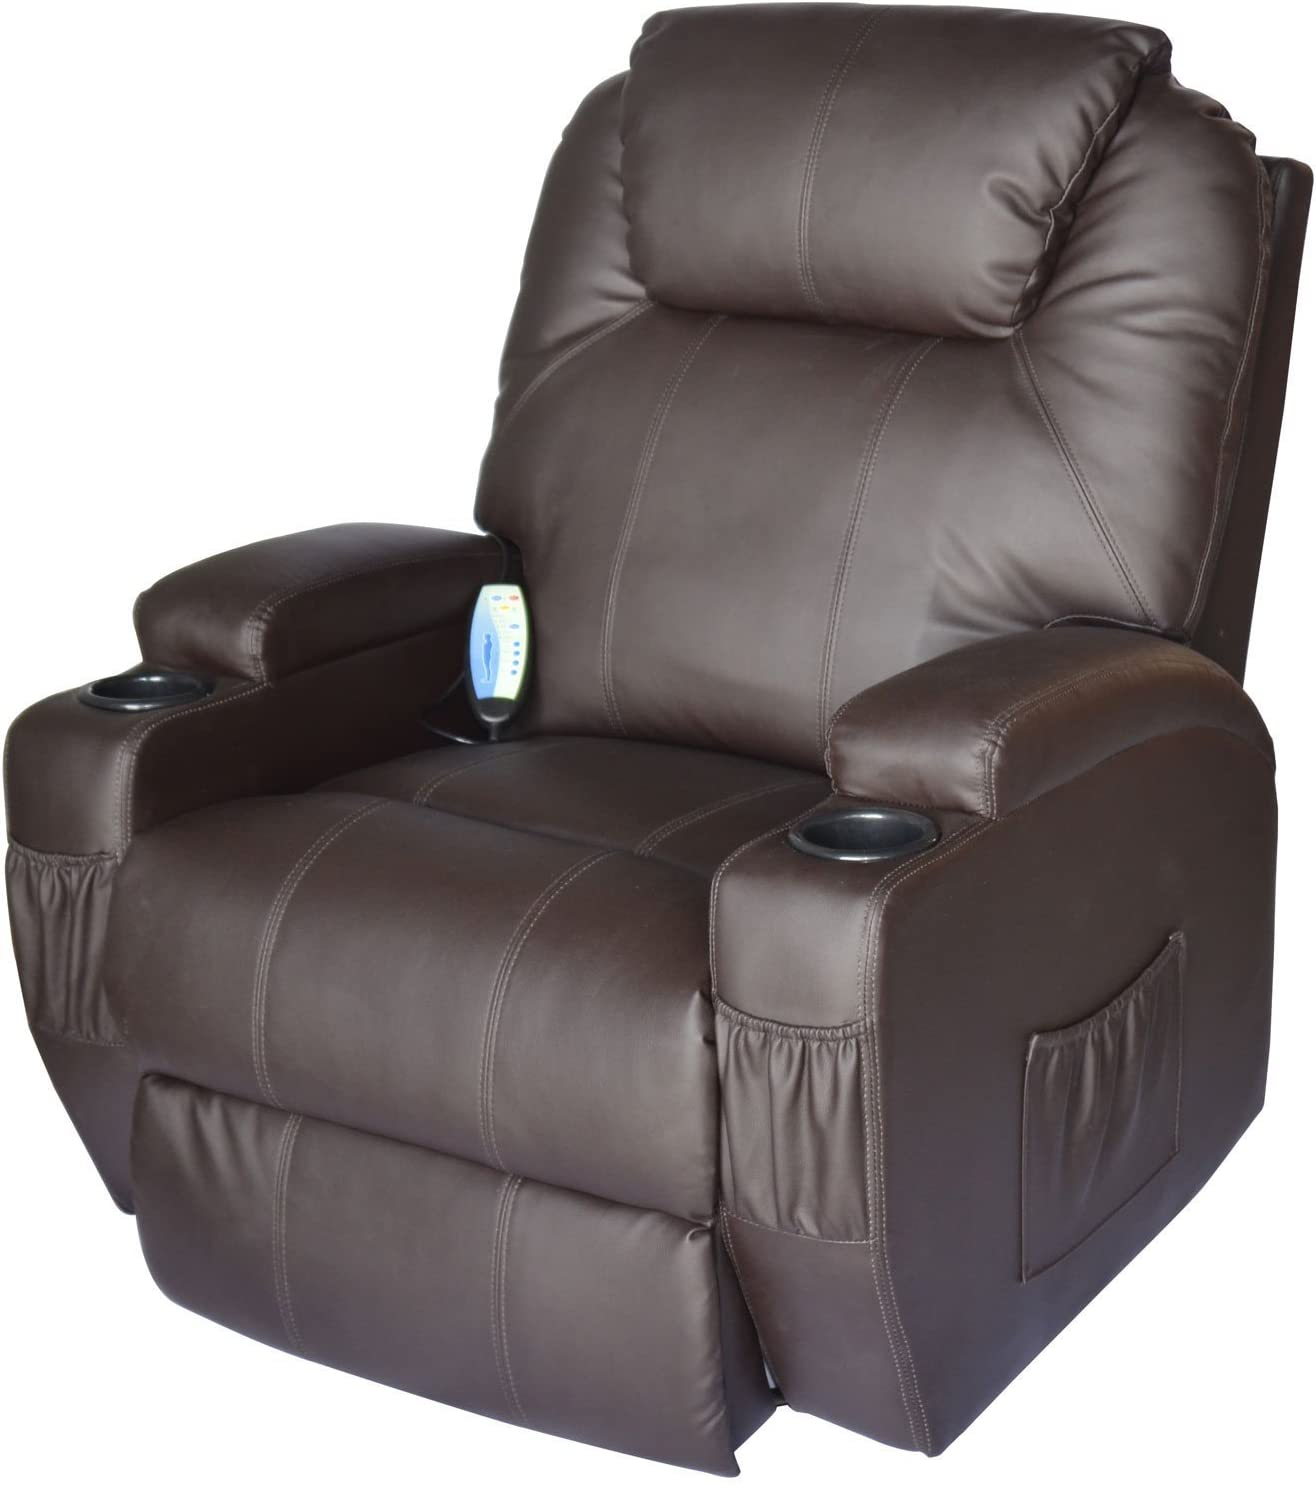 Homcom PU Leather Padded Recliner Reviews